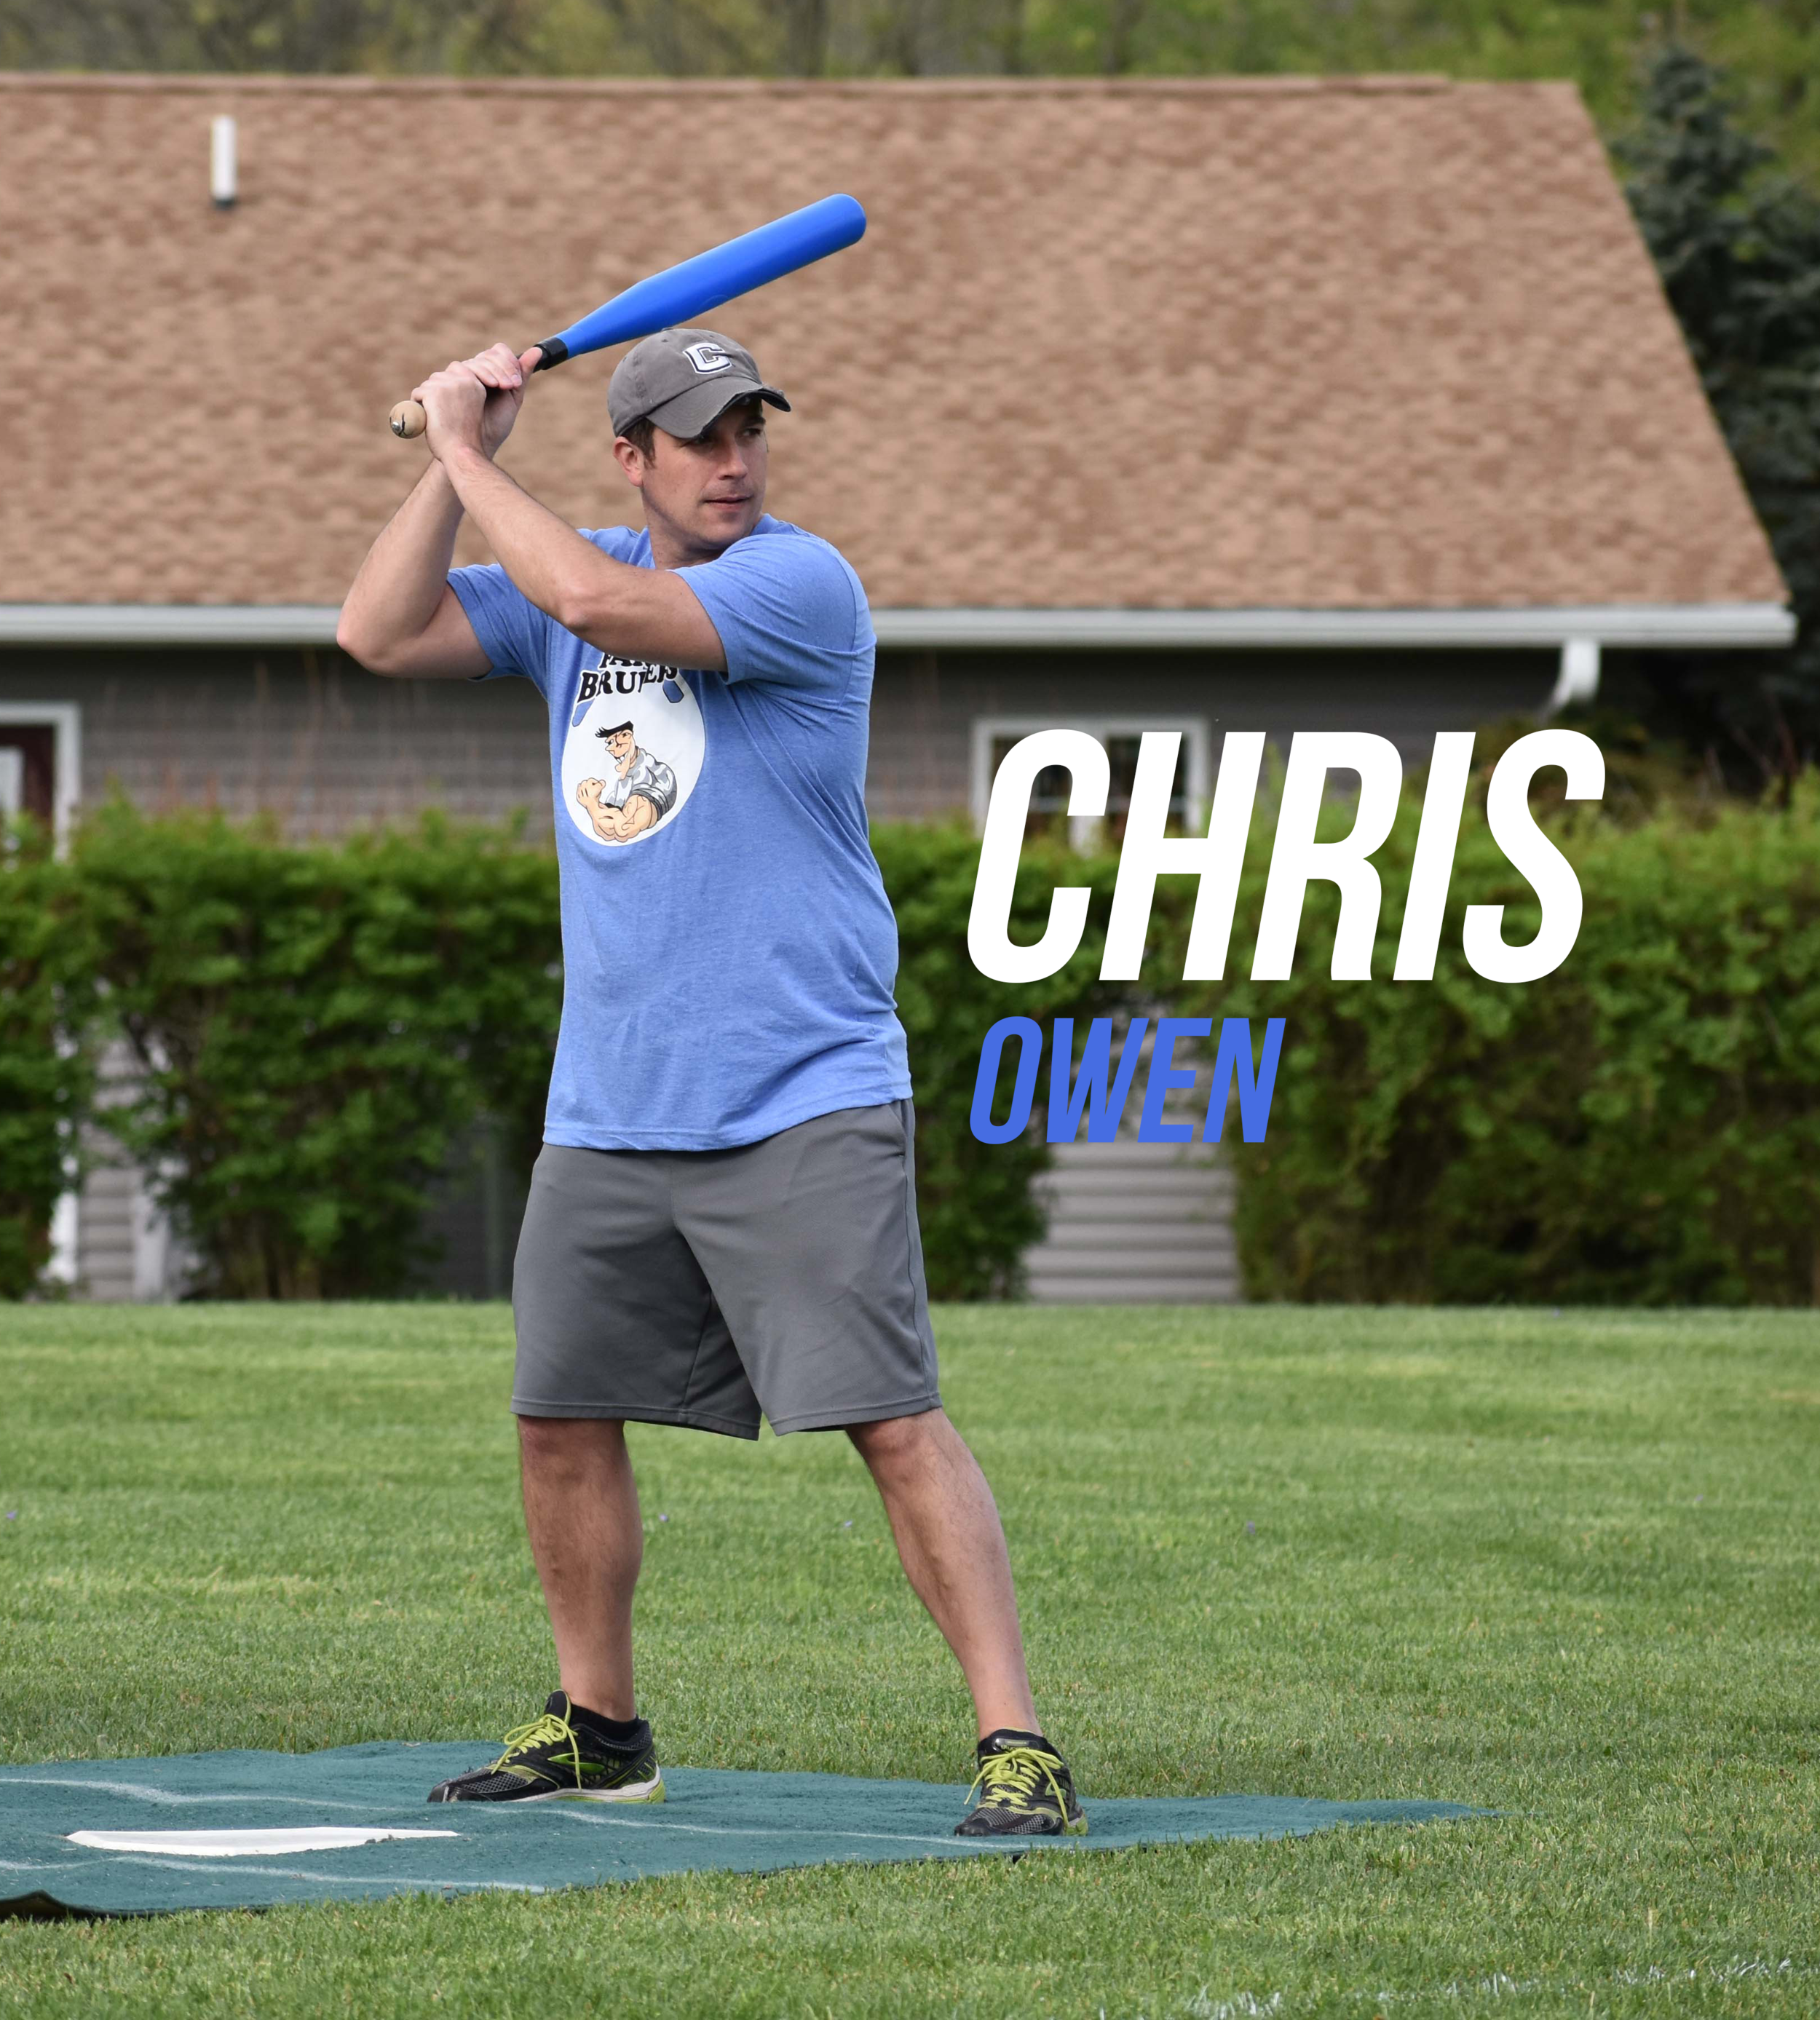 Chris Owen BB concept (1).png